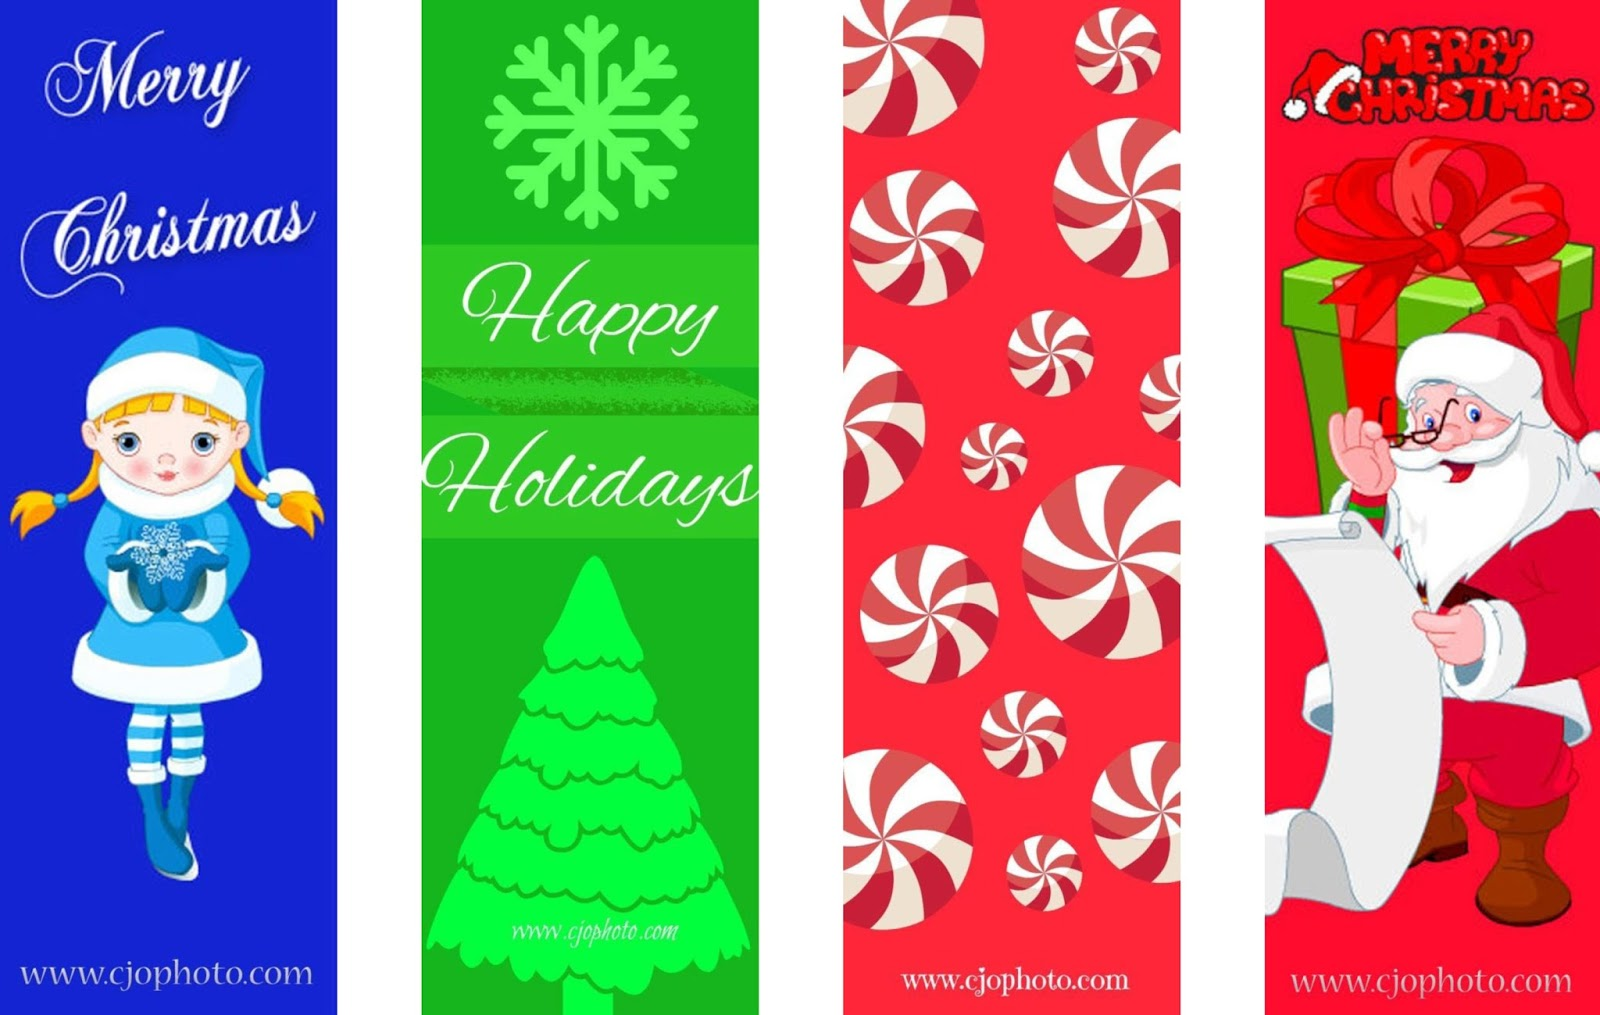 photo about Printable Christmas Bookmarks named CJO Picture: Printable Bookmarks: Xmas